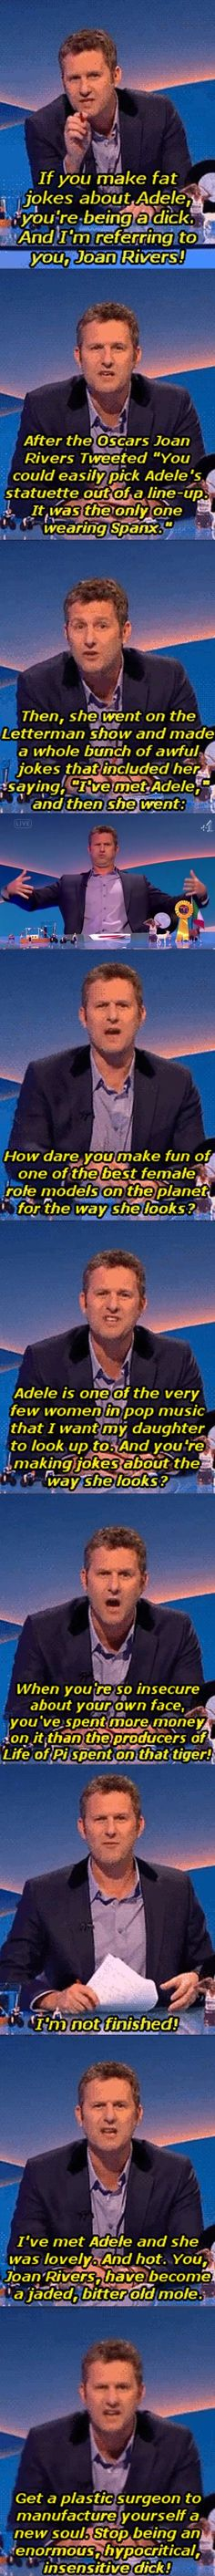 Who is this man? I LOVE it when men speak up about situations like this and who aren't afraid to speak their minds about ridiculous beauty standards.<<<<<Adam hills